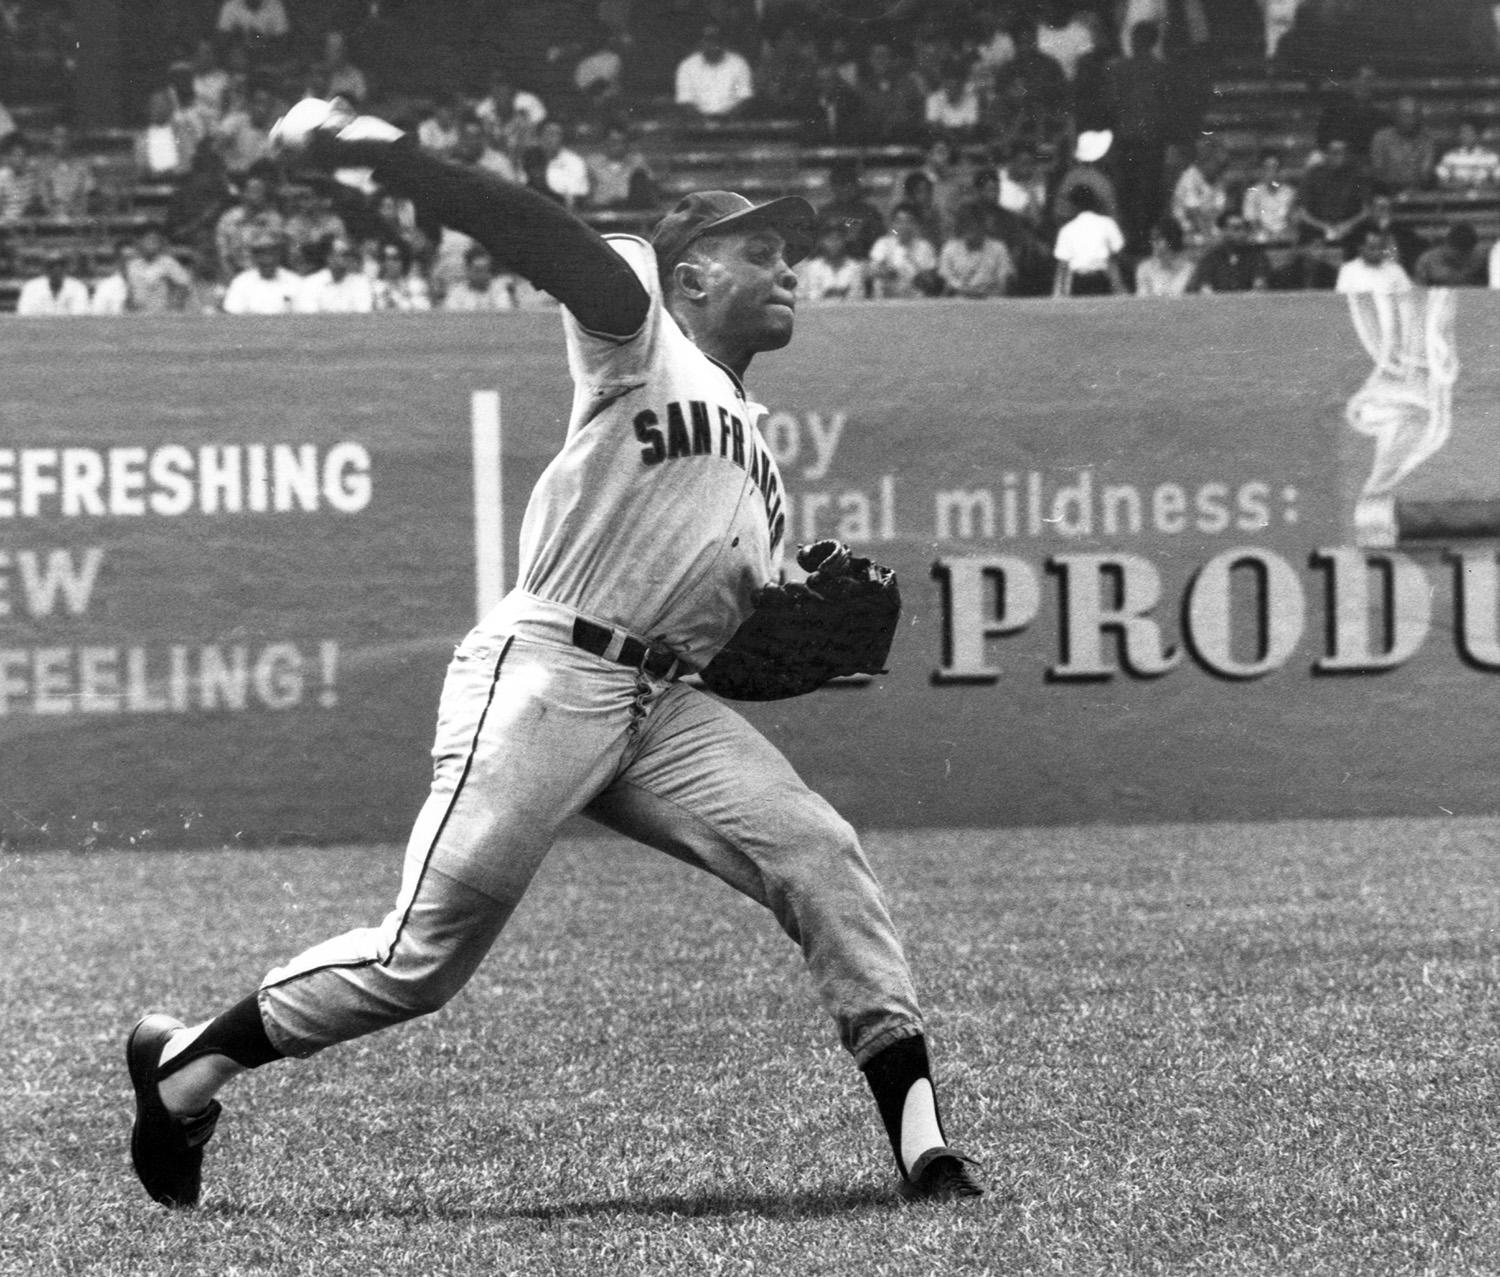 Due to his powerful outfield throwing arm, some talent evaluators compared Ollie Brown to Hall of Famer Willie Mays (pictured above). (National Baseball Hall of Fame and Museum)